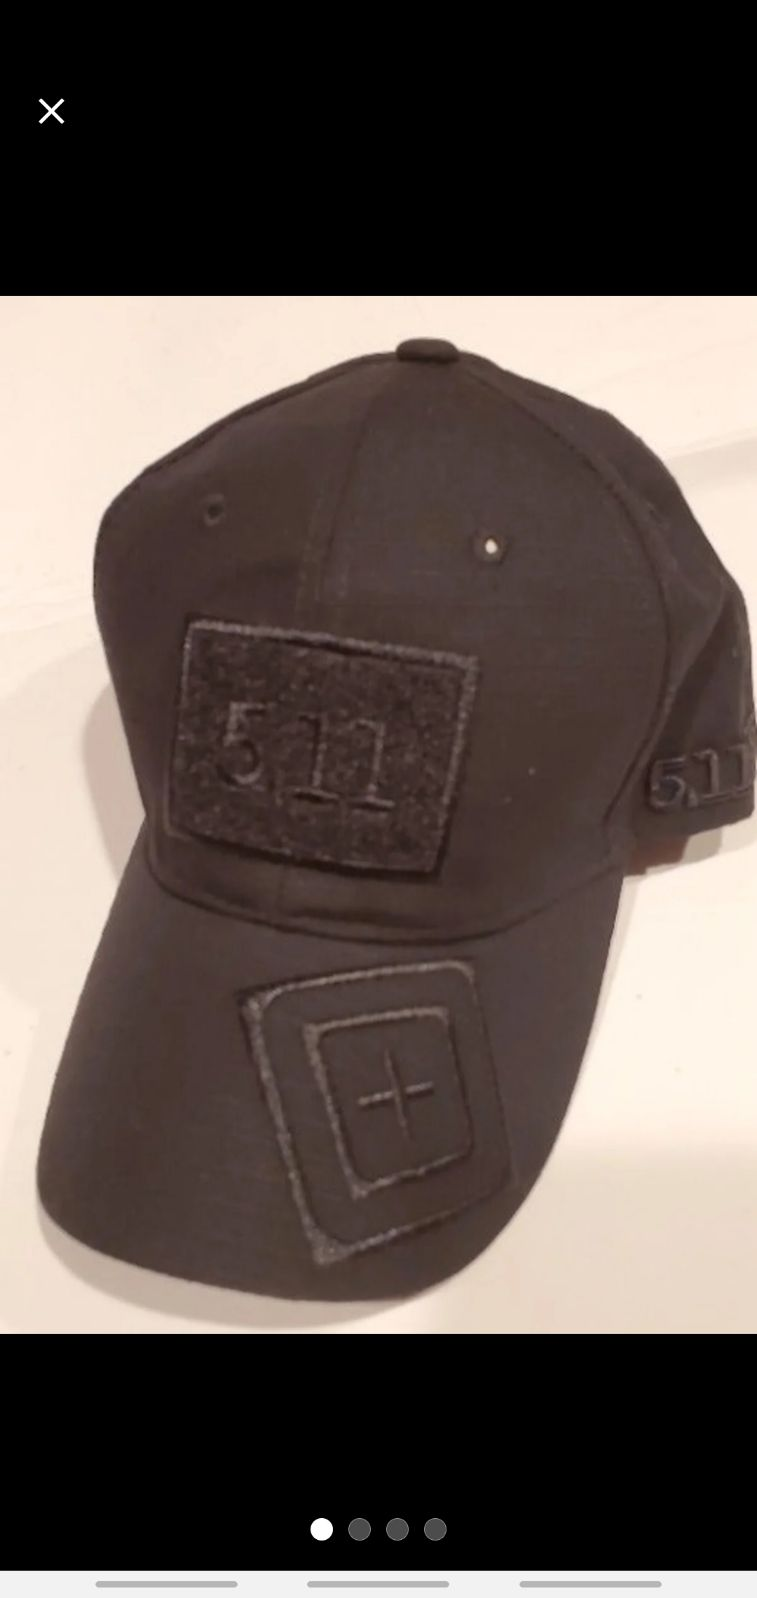 5.11 tactical patch cap hat